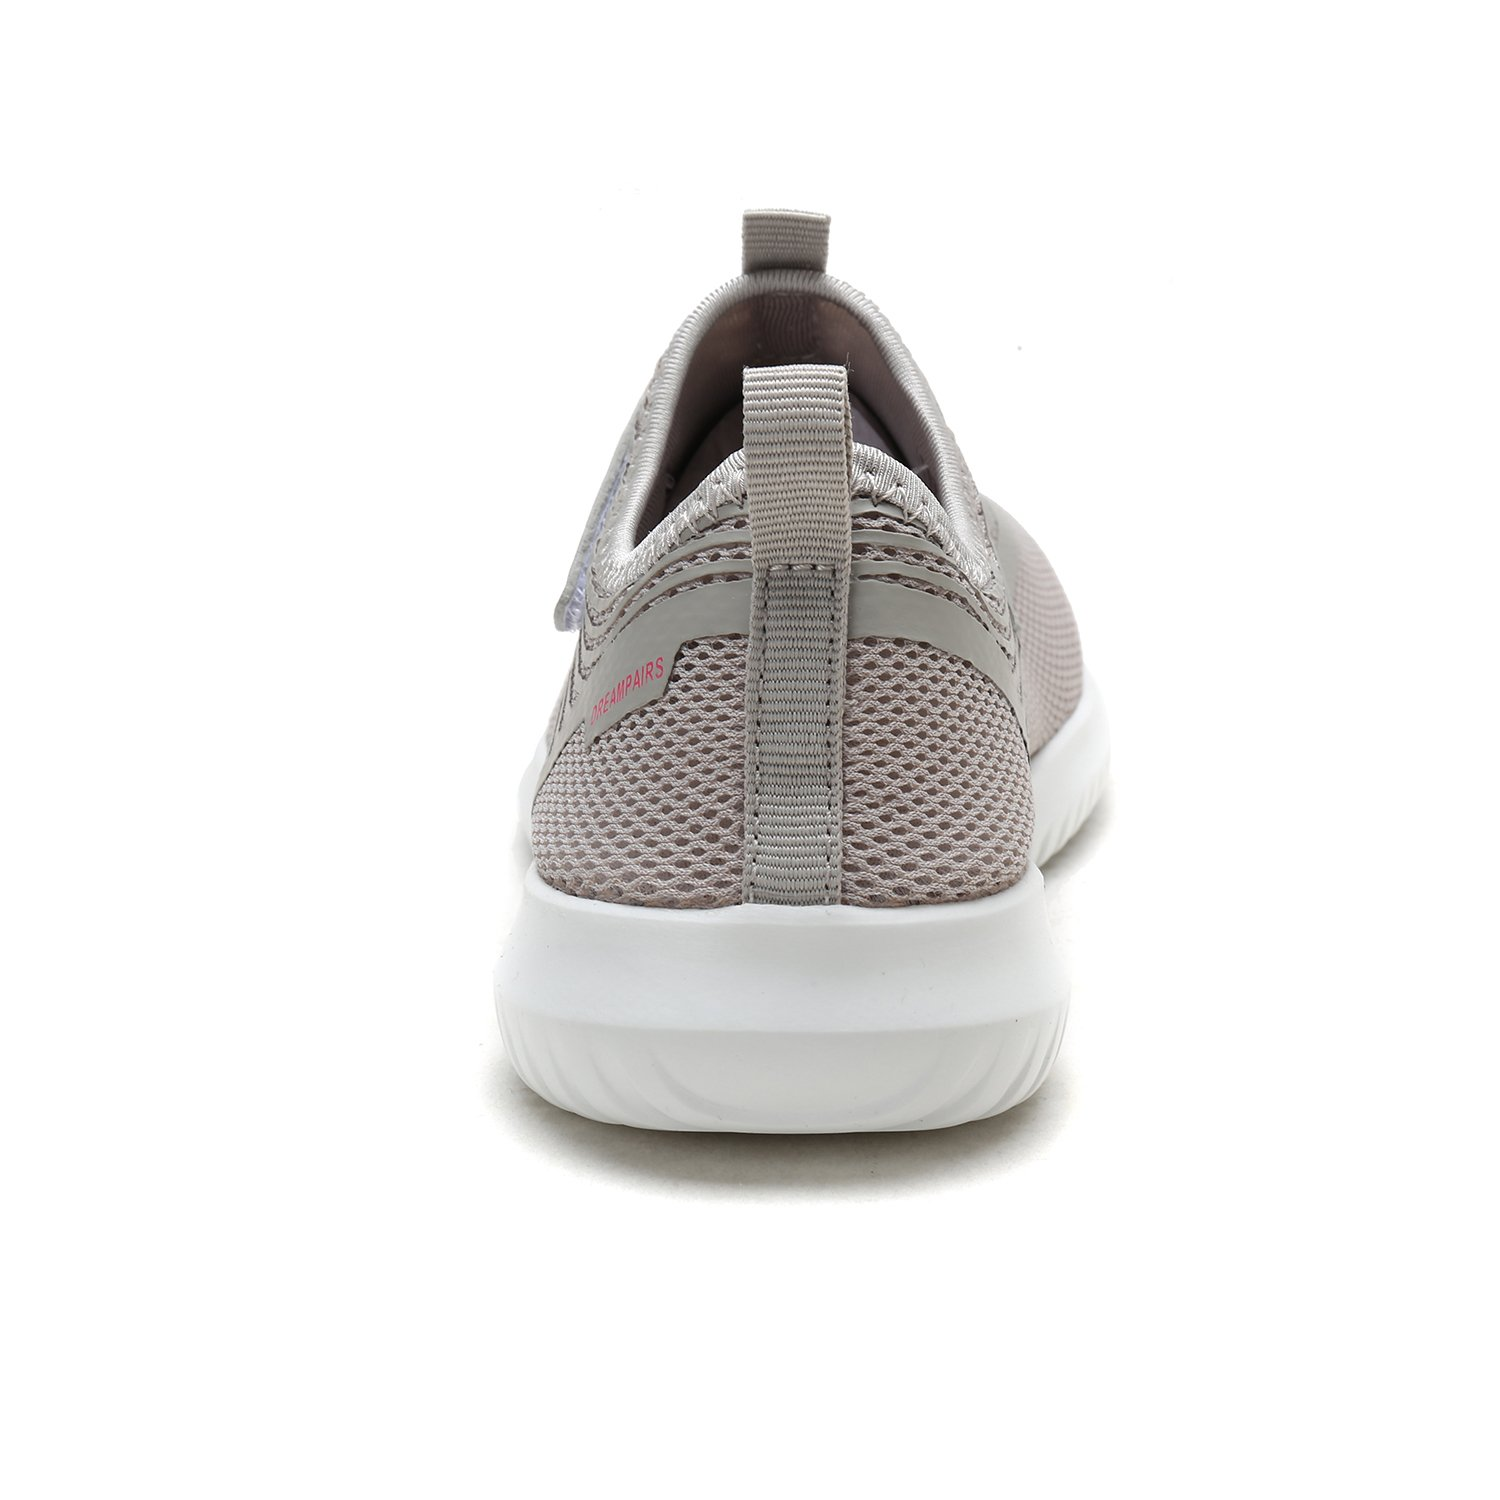 DREAM PAIRS Quick-Dry Water Shoes Sports Walking Casual Sneakers for Women B07886BVGR 9 M US|Lt.grey/H.pink